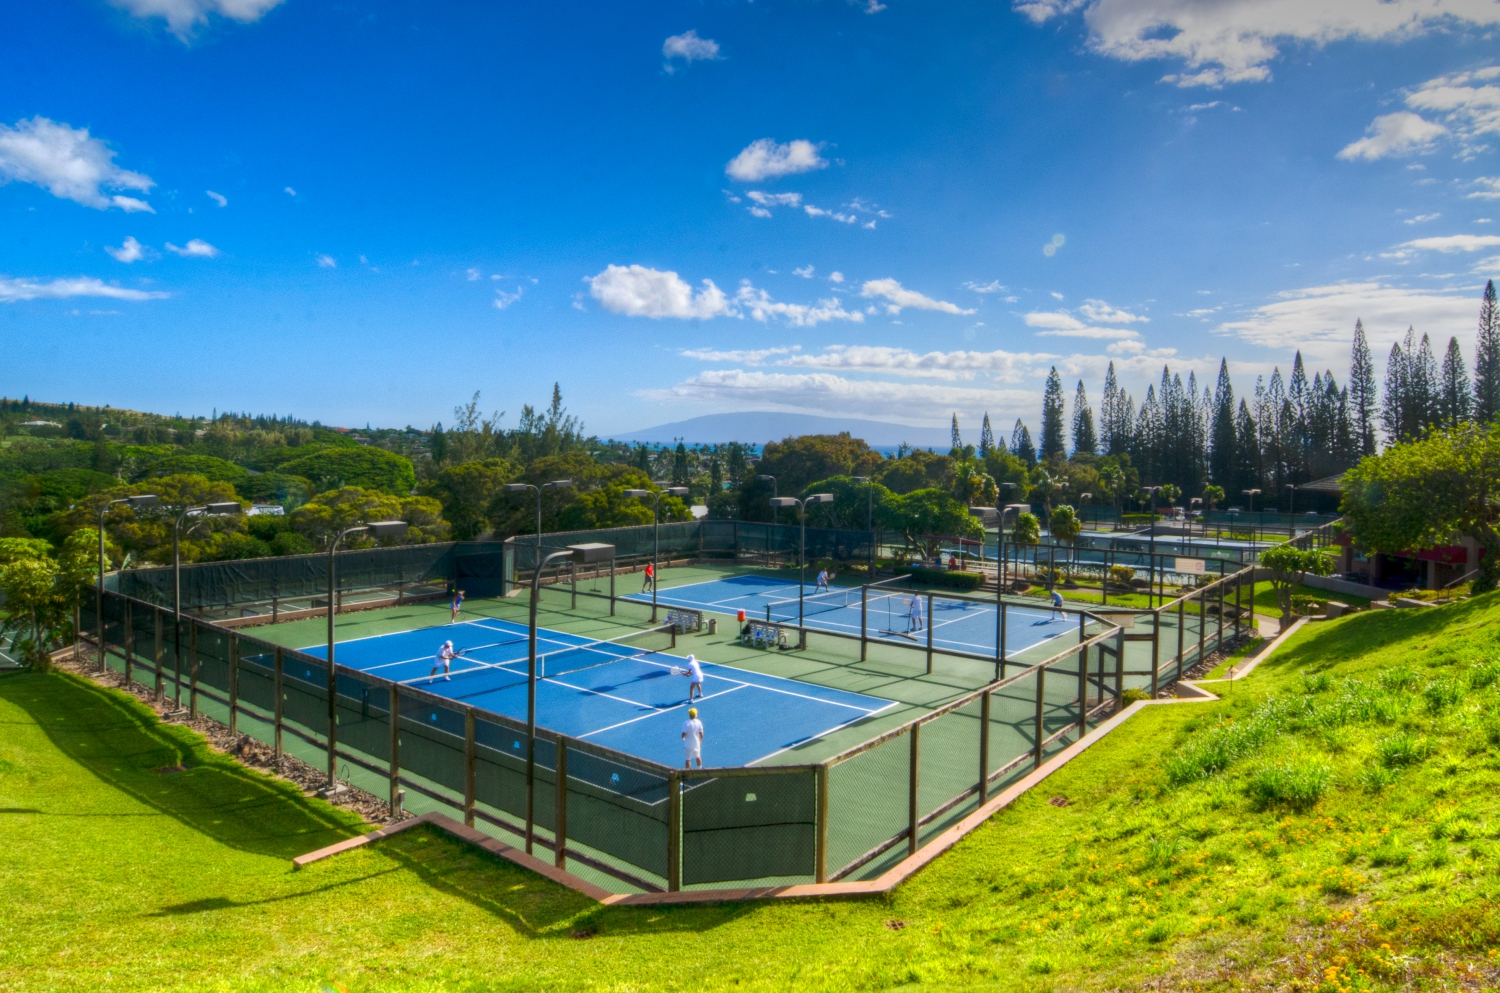 Kapalua Tennis Garden Photo